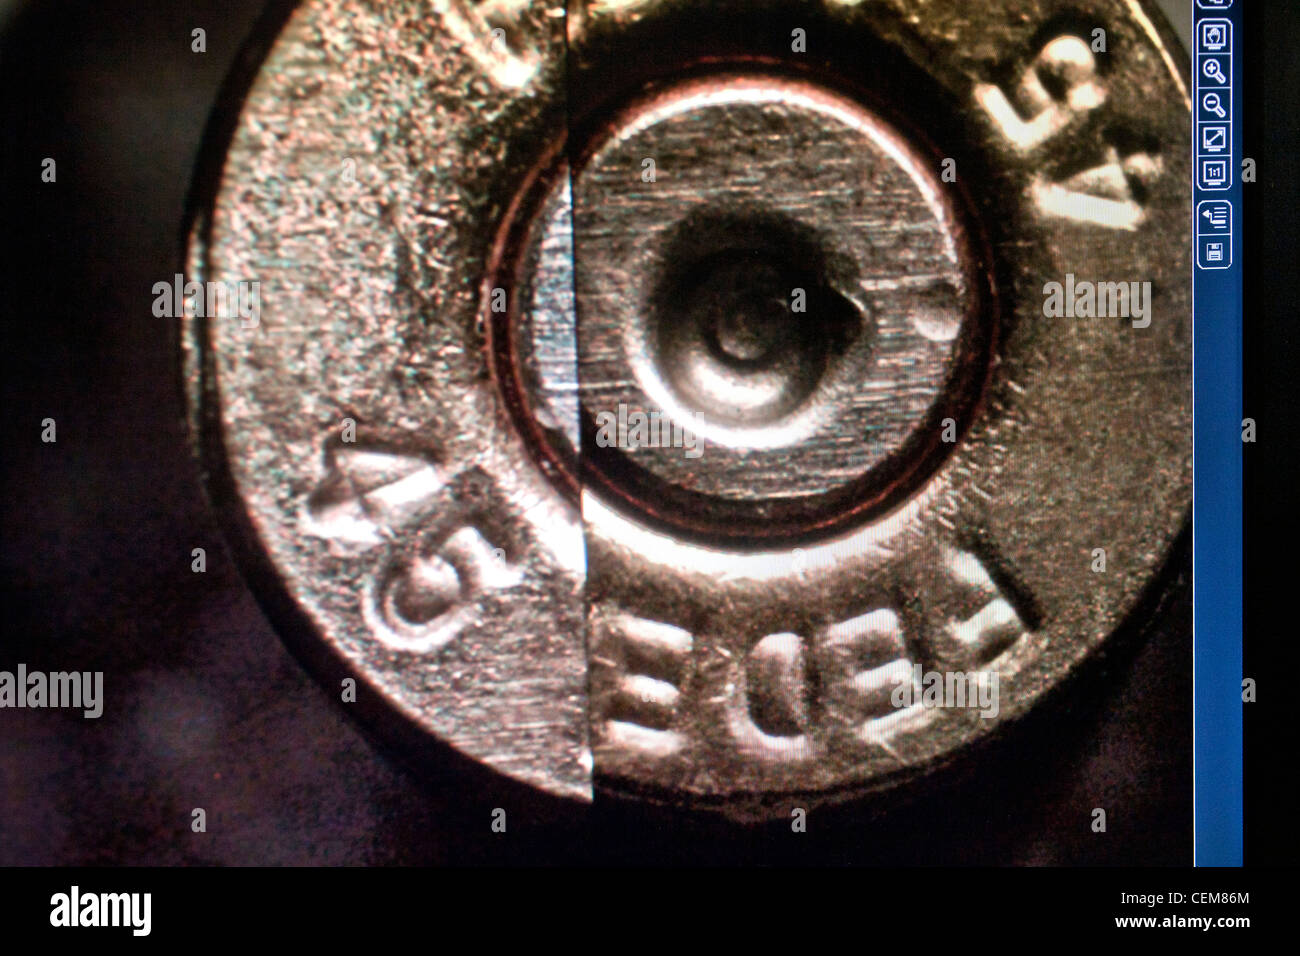 Identification details from two cartridge cases from a crime scene are juxtaposed on a comparison microscope monitor. - Stock Image